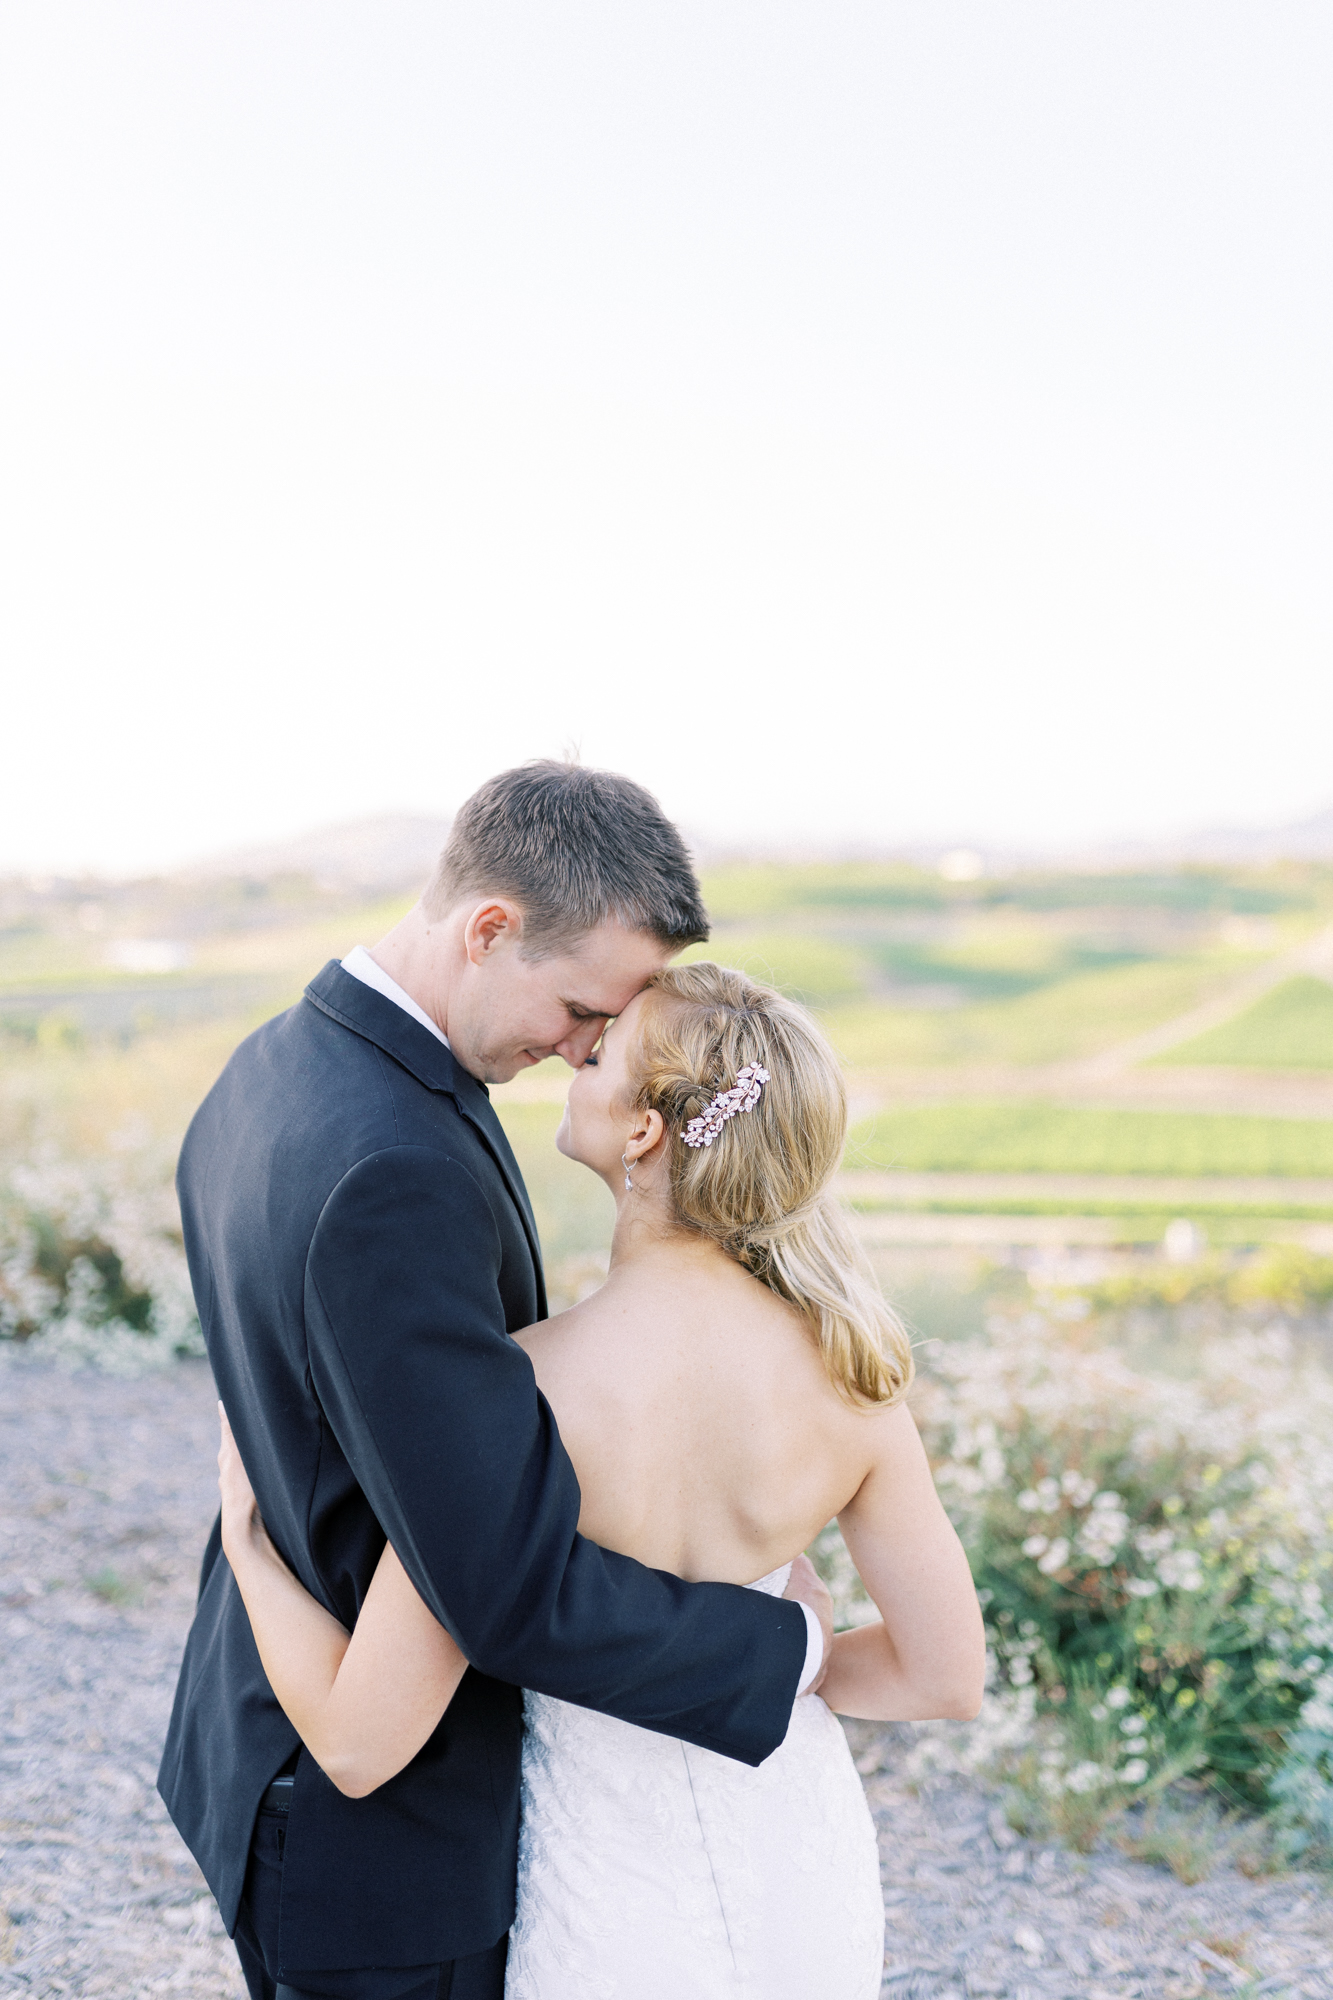 Temecula_Wedding_Photographer-0046.jpg